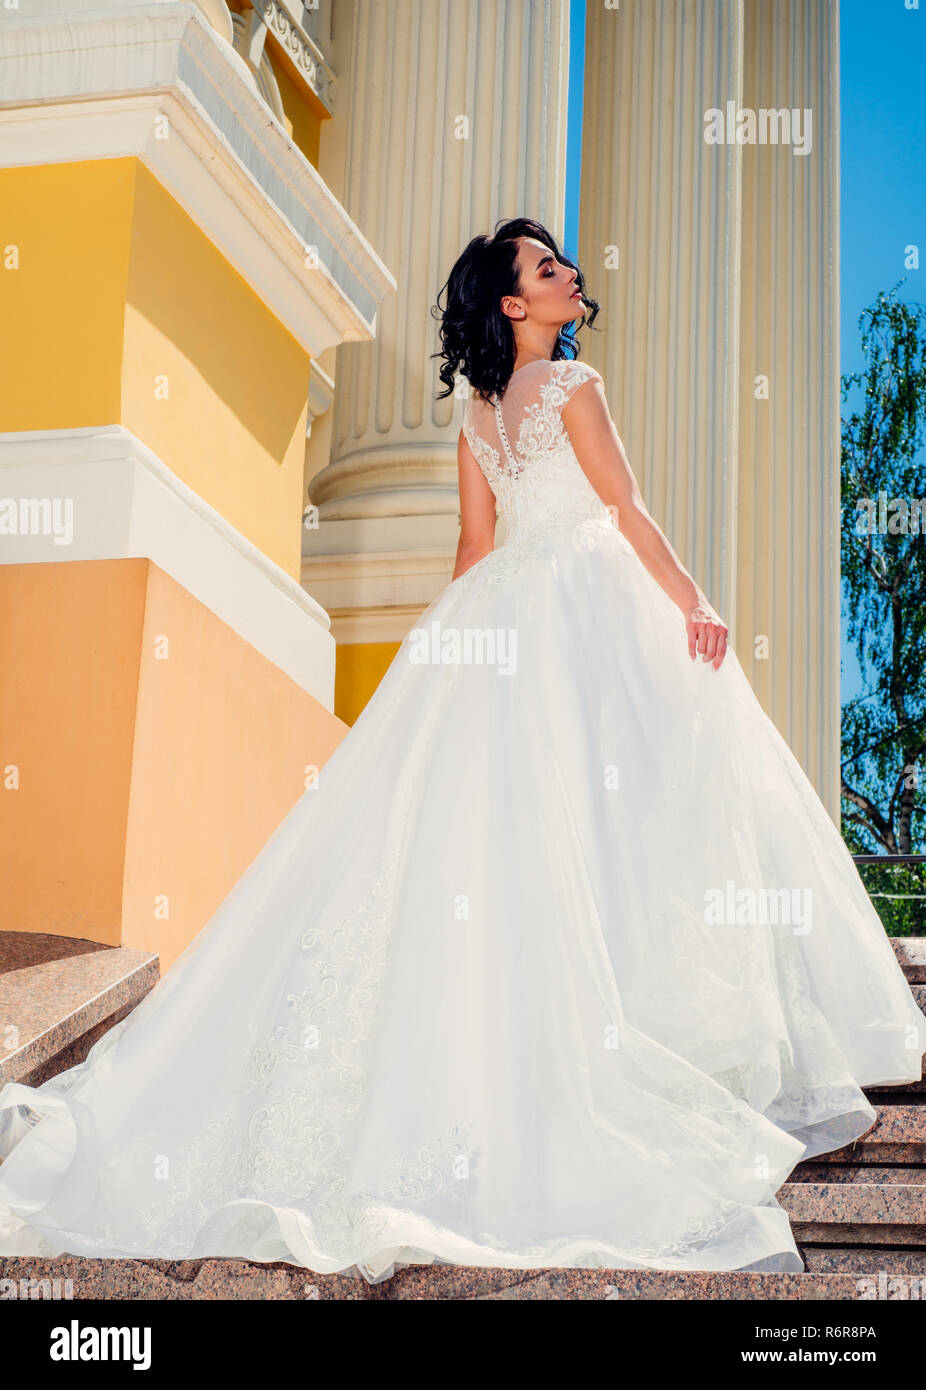 Wonderful Bridal Gown Beautiful Wedding Dresses In Boutique Woman Is Preparing For Wedding Elegant Wedding Salon Is Waiting For Bride Happy Bride Before Wedding Engagement It Suits Stock Photo Alamy,Casual Pakistani Wedding Guest Dresses 2020